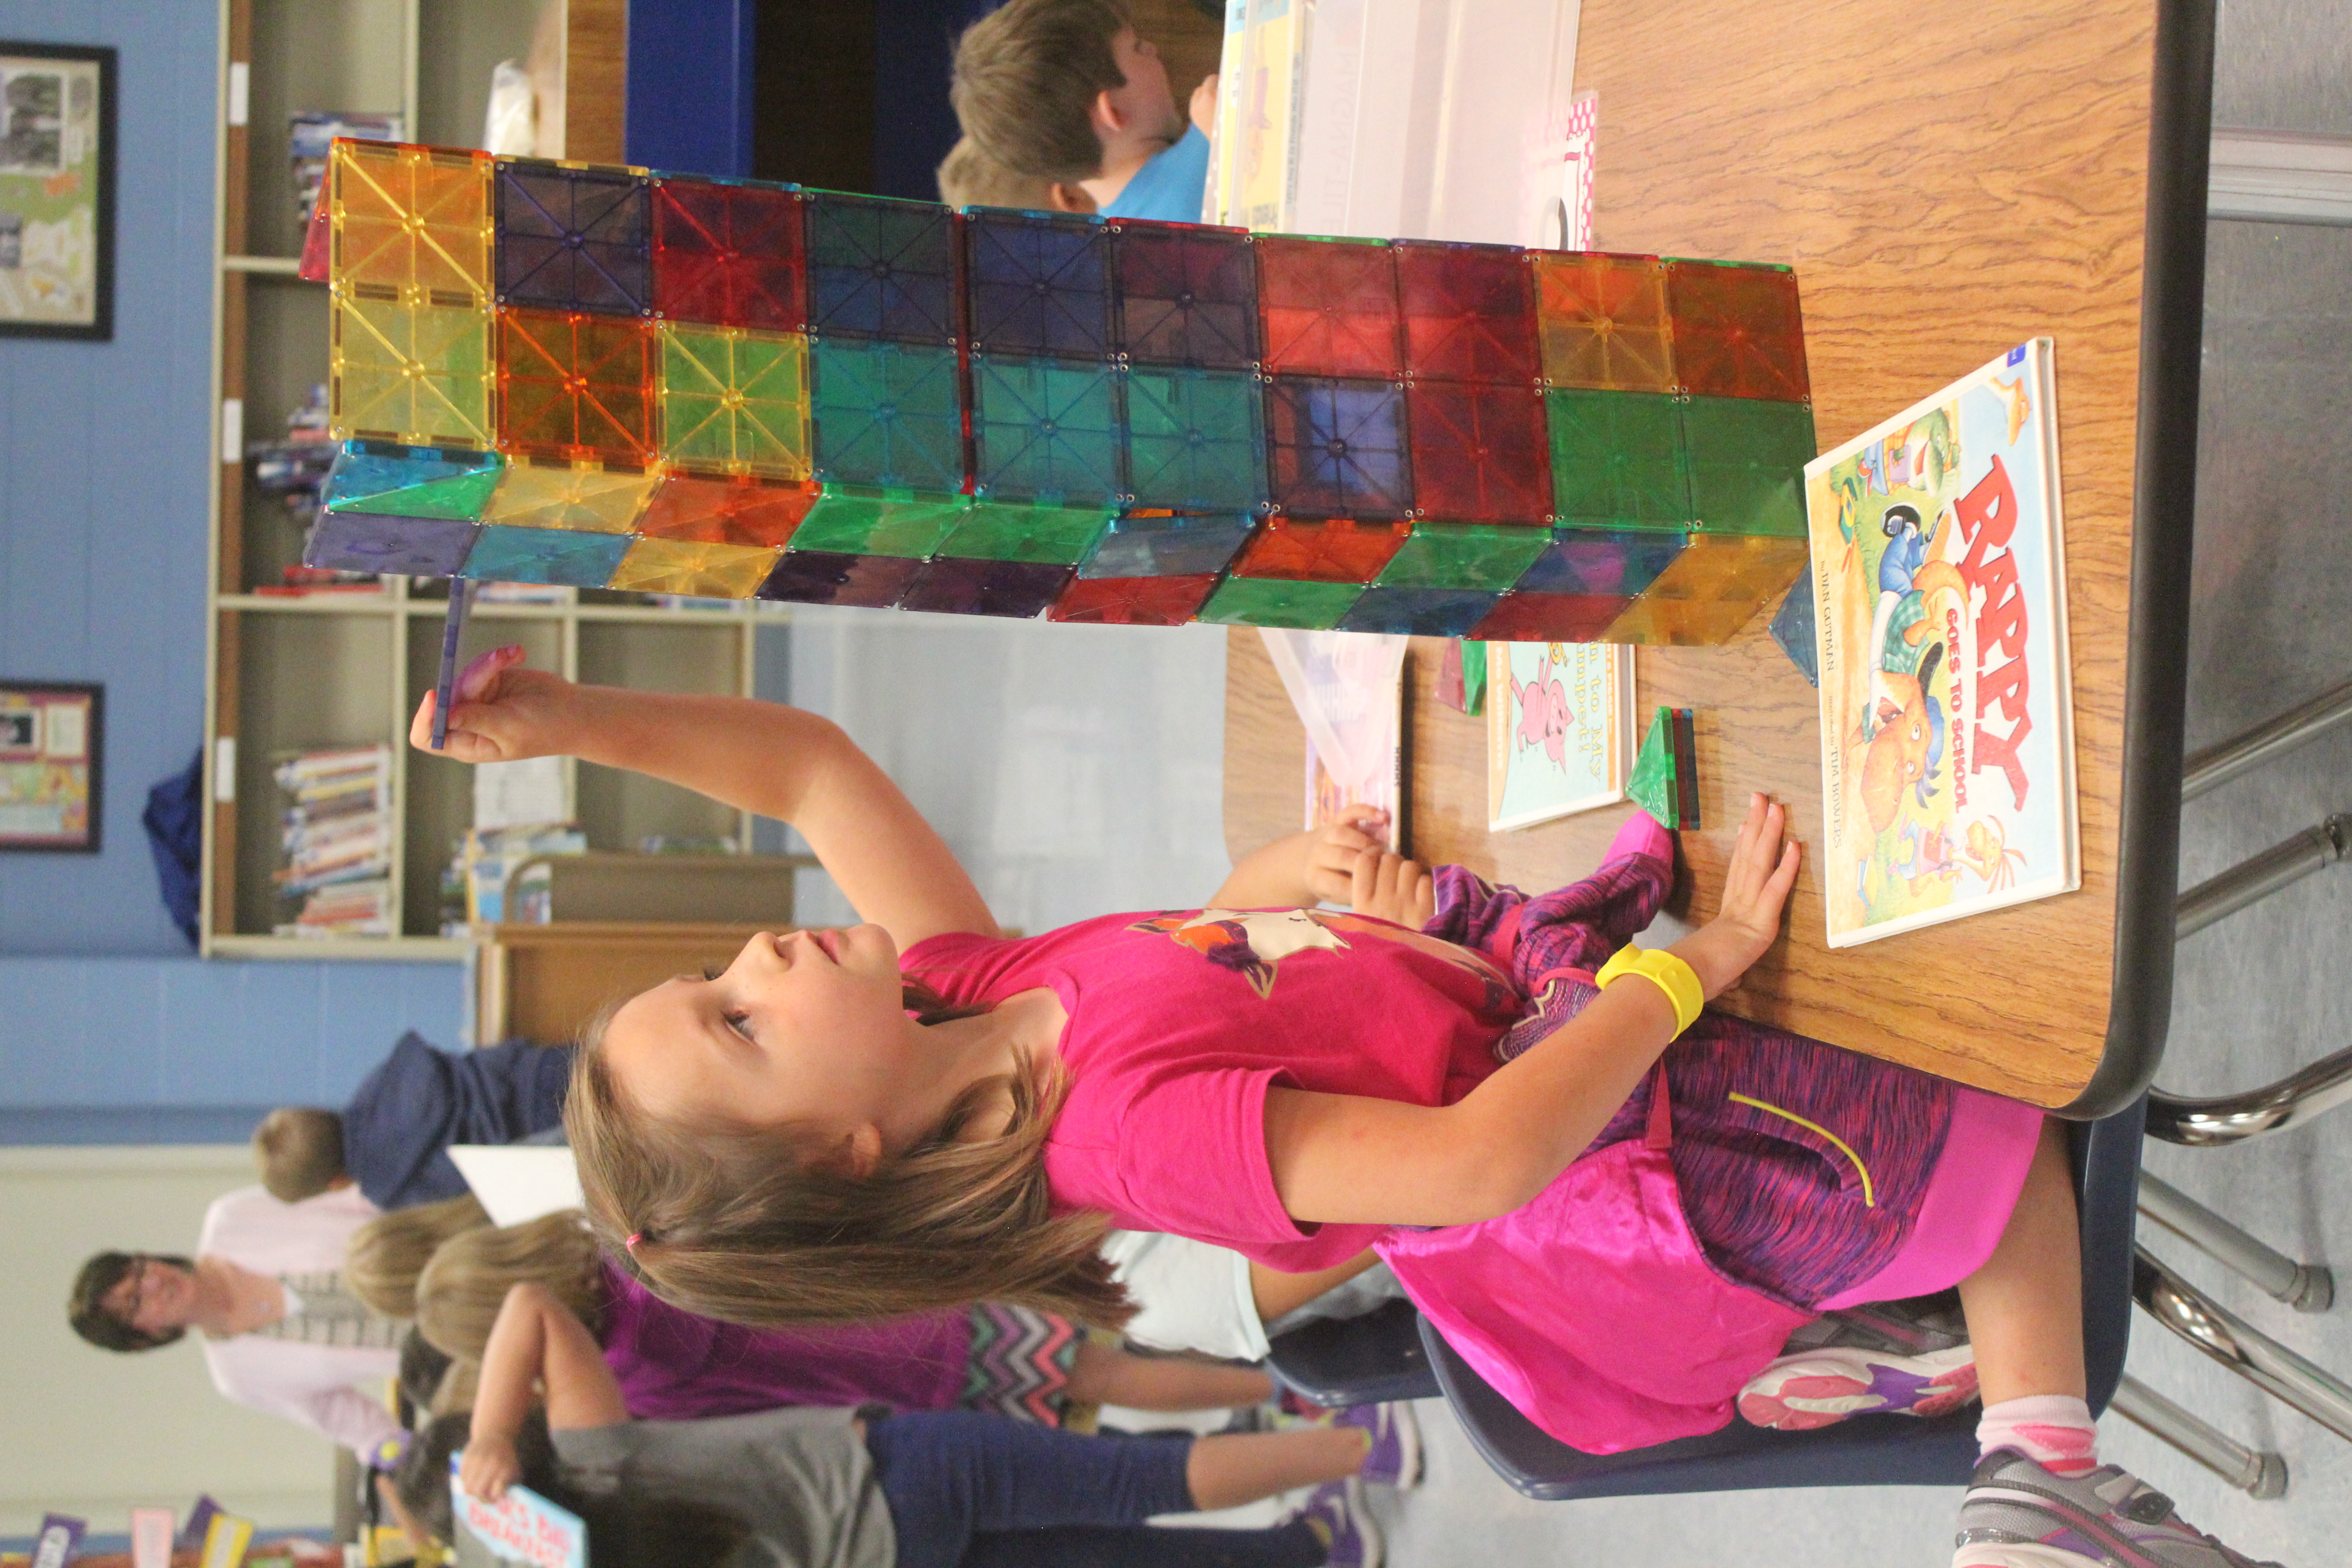 A girl helps build a tower with magnetic blocks in the library.